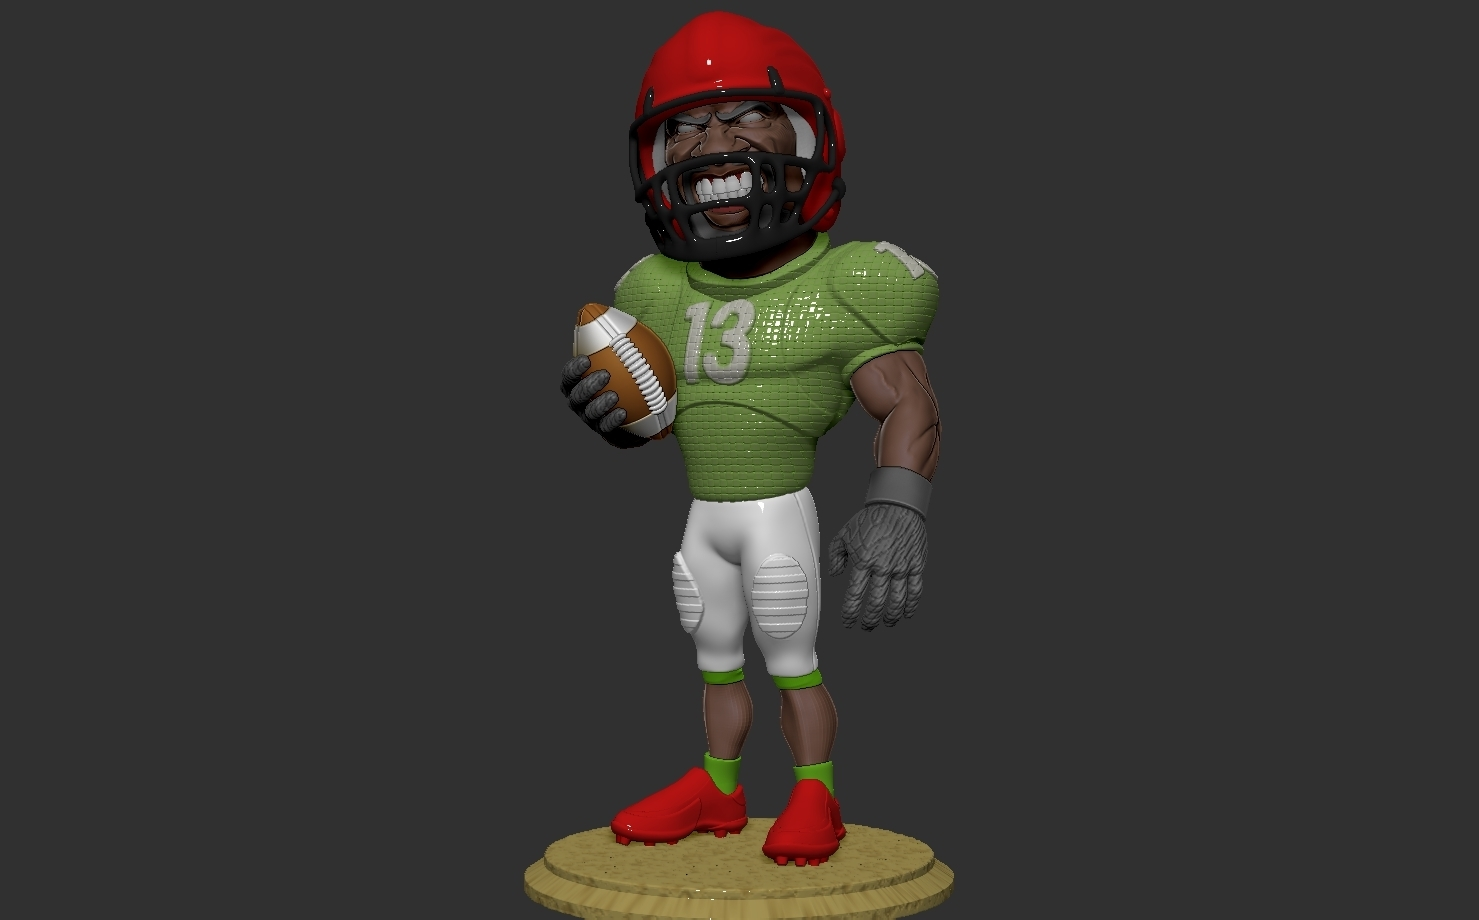 ZBrush Document.jpg Download free OBJ file football player • 3D printer object, dimka134russ